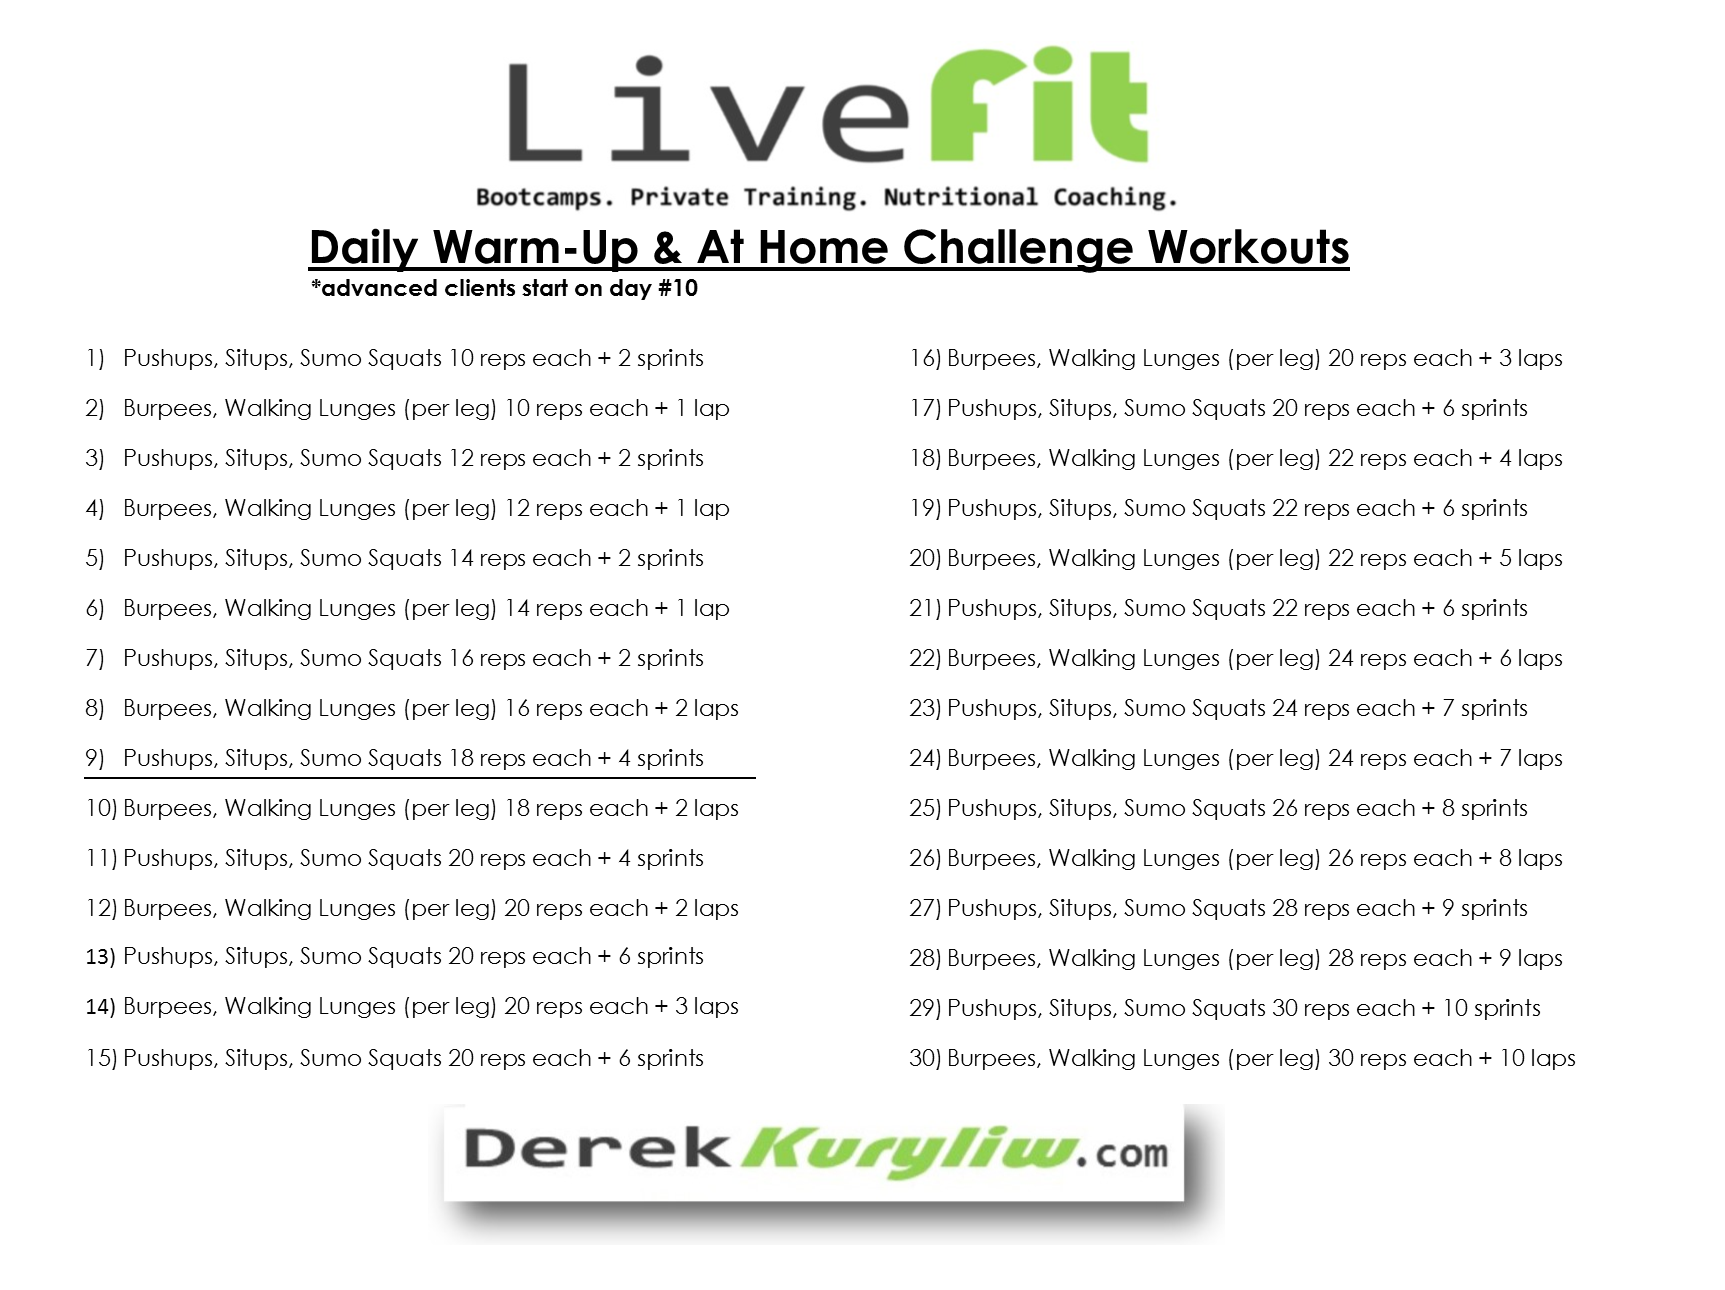 2016 21 Day Nutrition And Accountability Challenge Daily